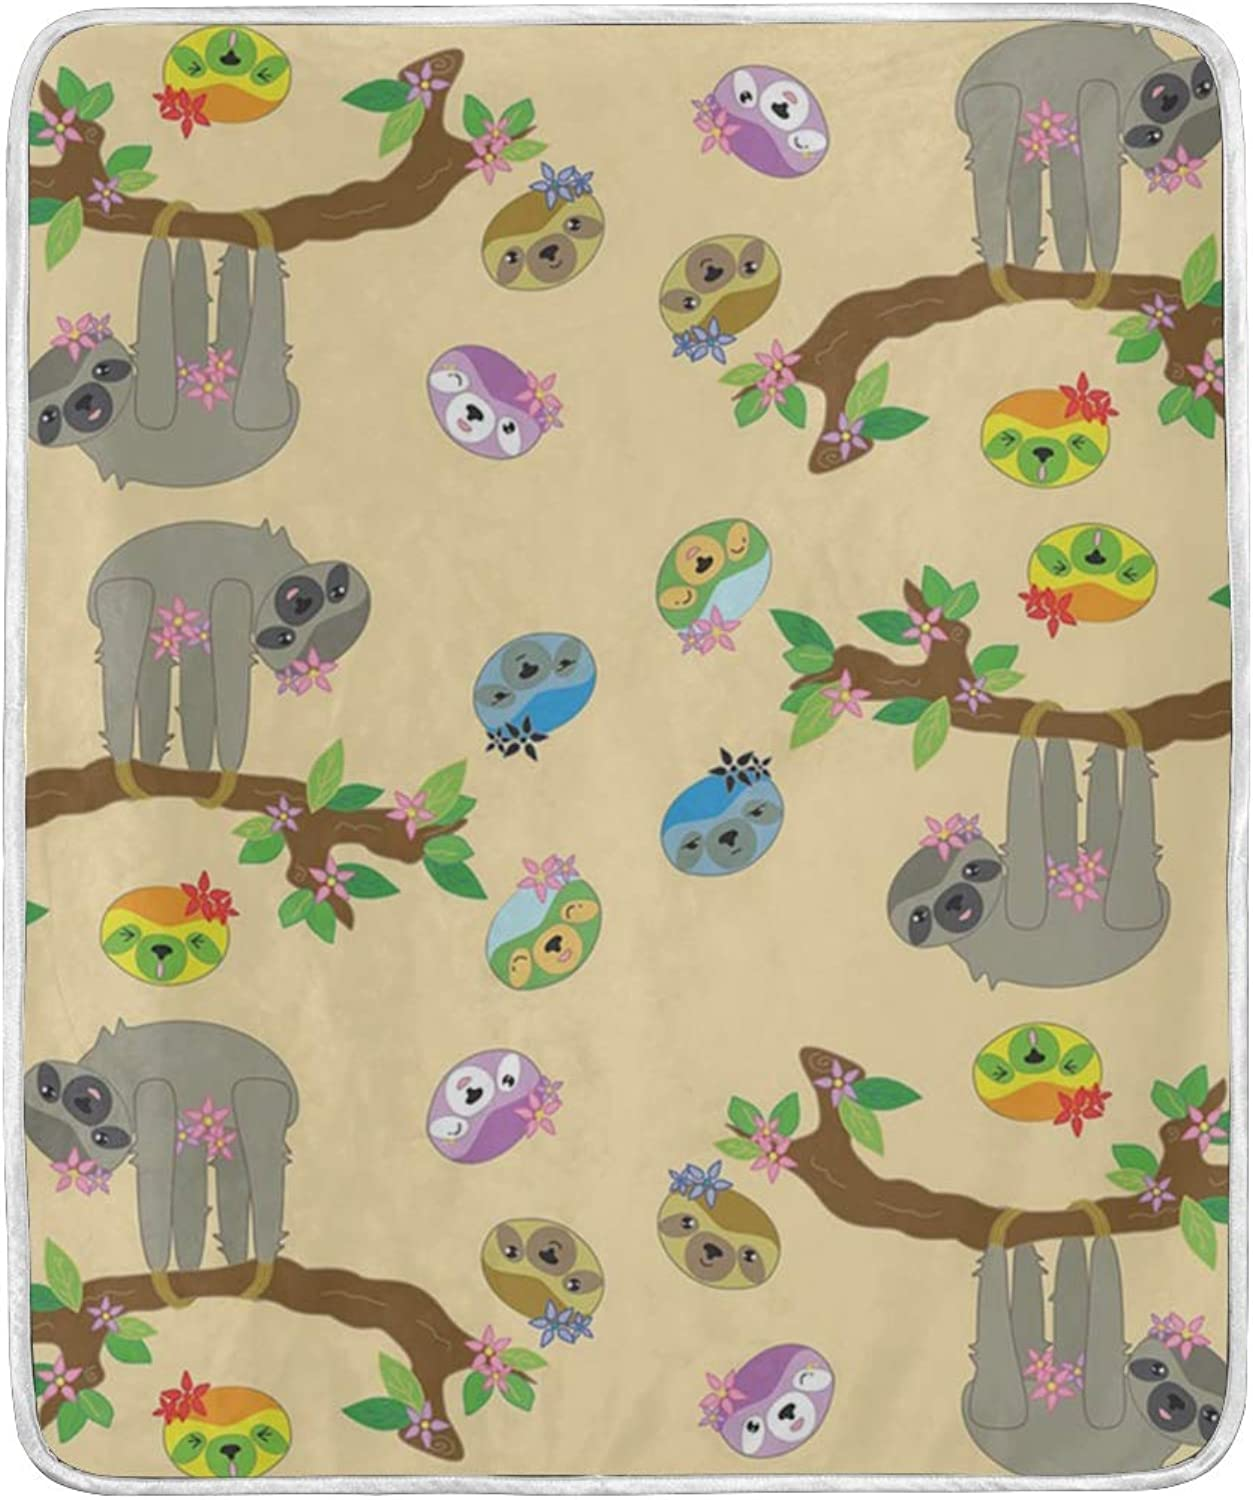 CIXUAN Cute Funnt Flowers Sloth Print Throw Blanket Comfort Design Home Decoration Lightweight Blanket for Kids Boys Women Men Perfect for Couch Sofa or Travelling